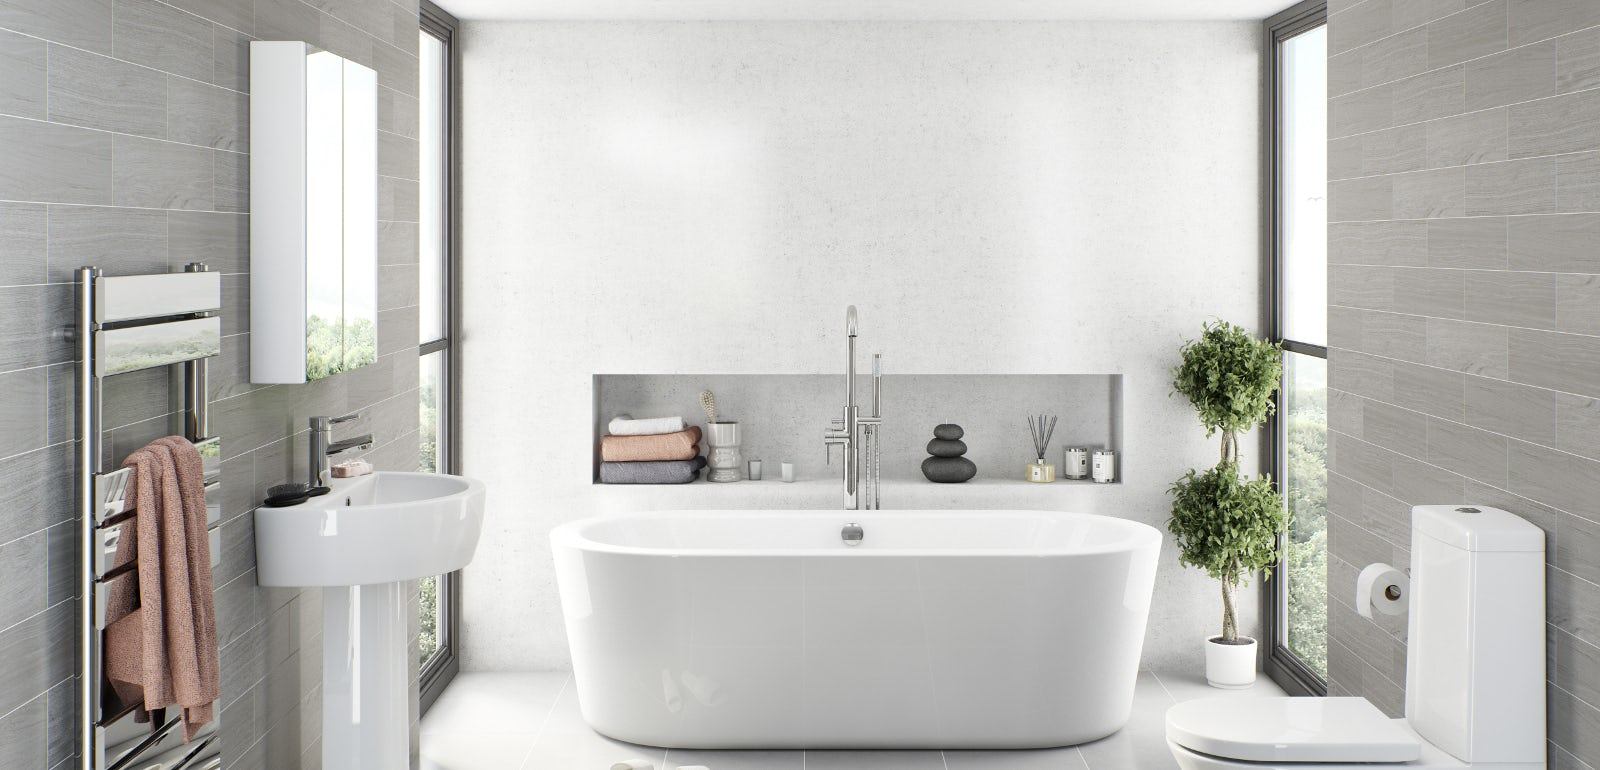 How Much To Pay To Have A Bathroom Fitted?